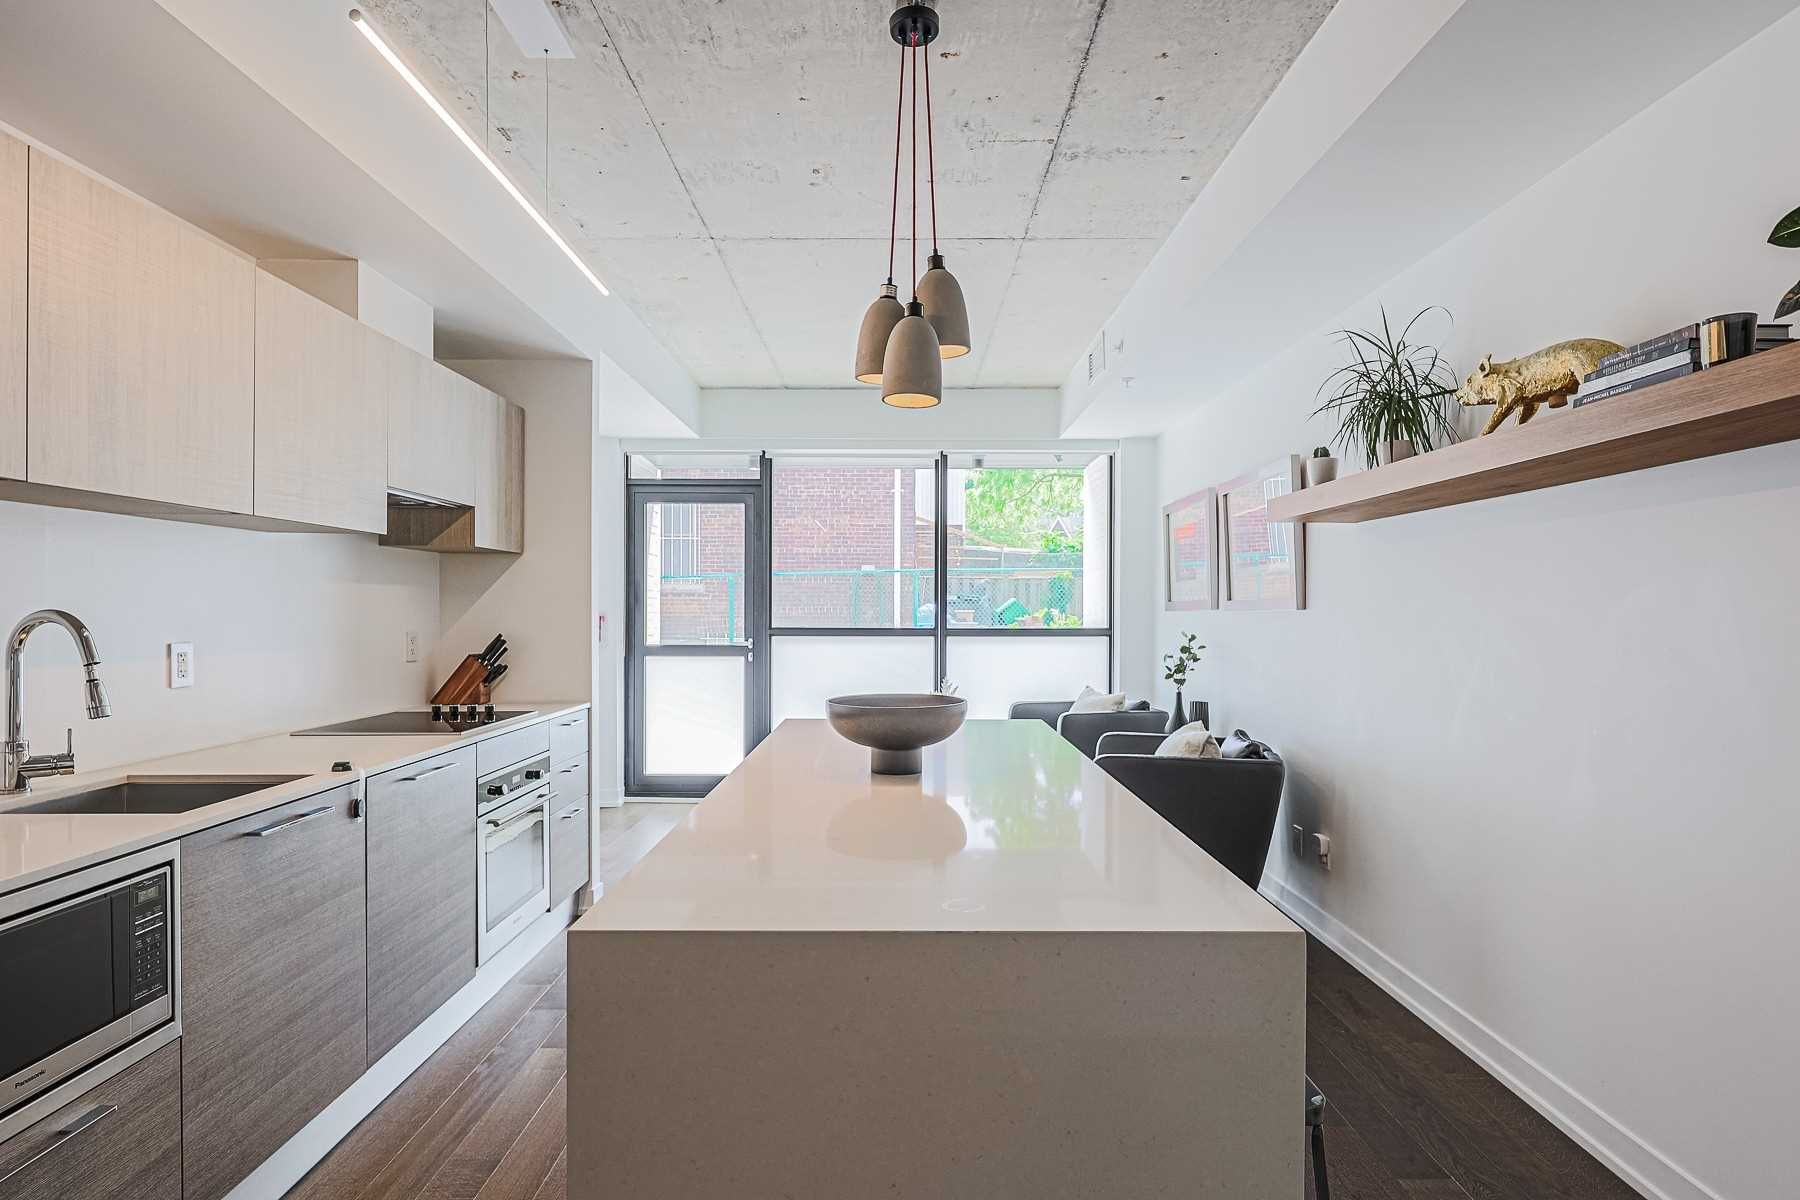 530 Indian Grve, unit 104 for sale in Toronto - image #1